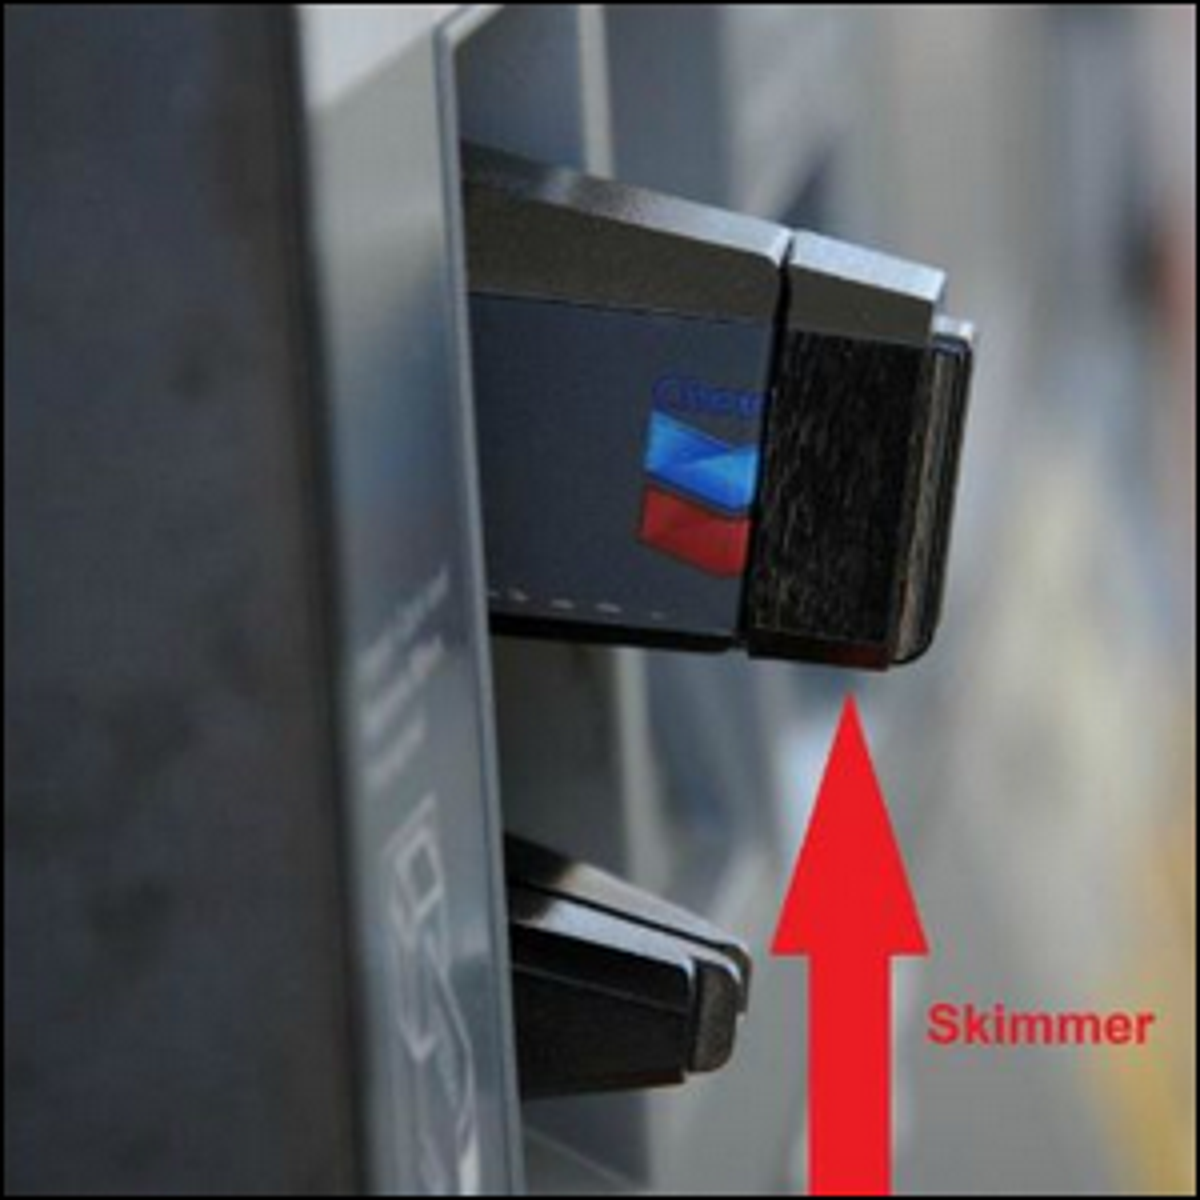 A credit card skimmer attached to a gasoline pump.